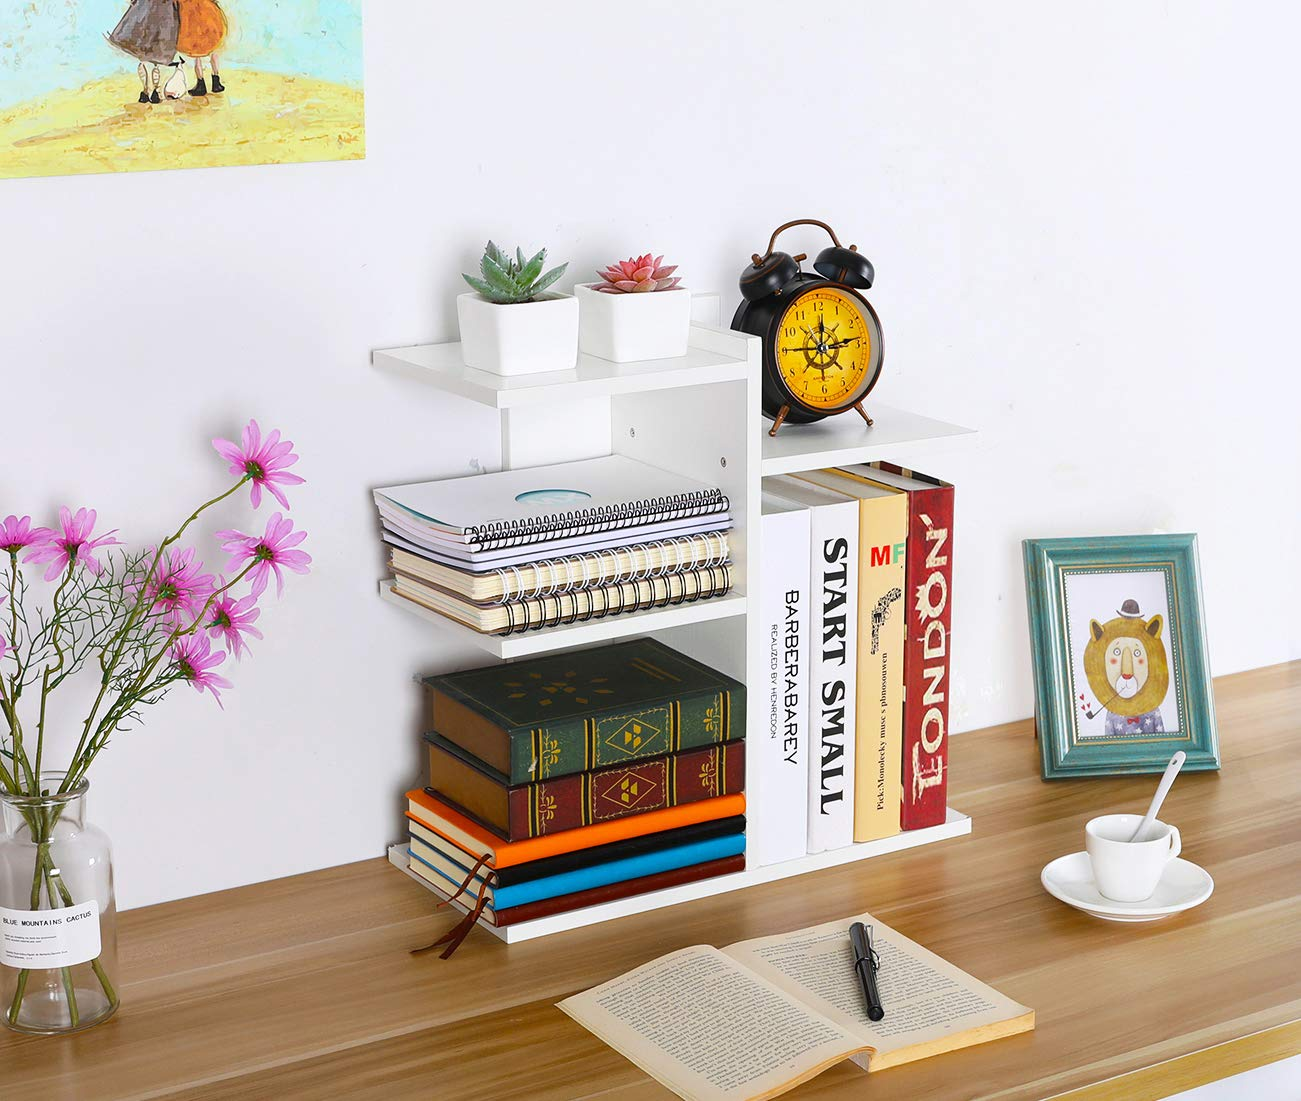 PAG Wood Desktop Bookshelf Assembled Countertop Bookcase Literature Holder Accessories Display Rack Office Supplies Desk Organizer, White by PAG (Image #1)